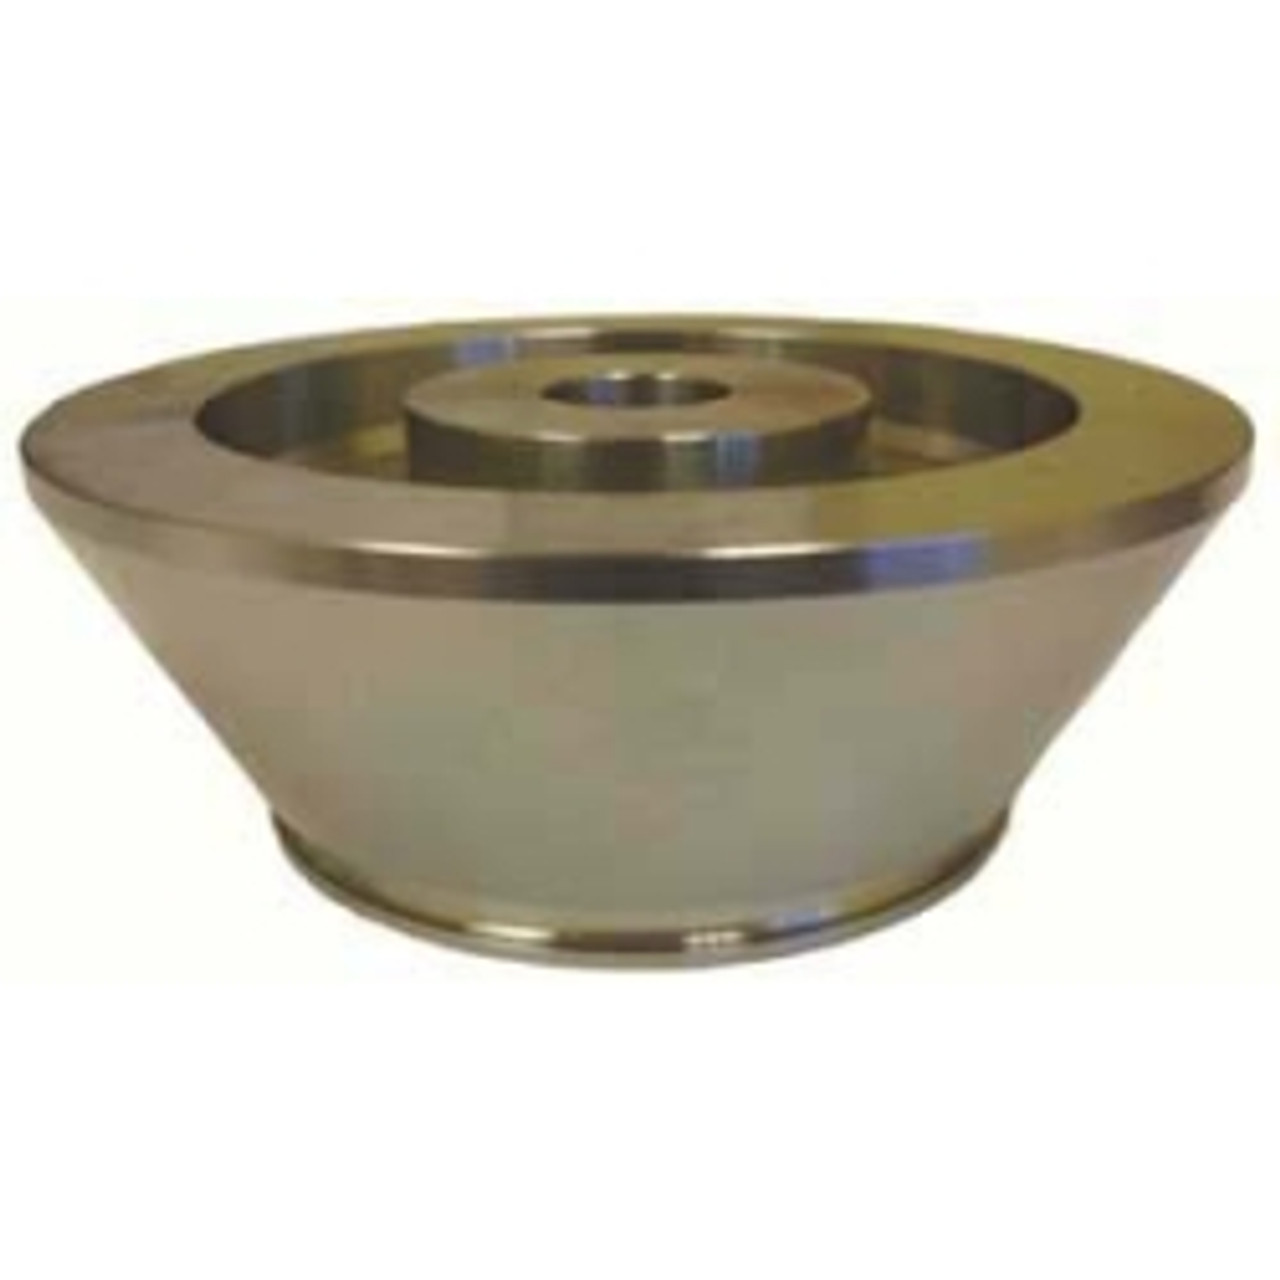 40 mm Wheel Balancer Cone 3.375-5.88